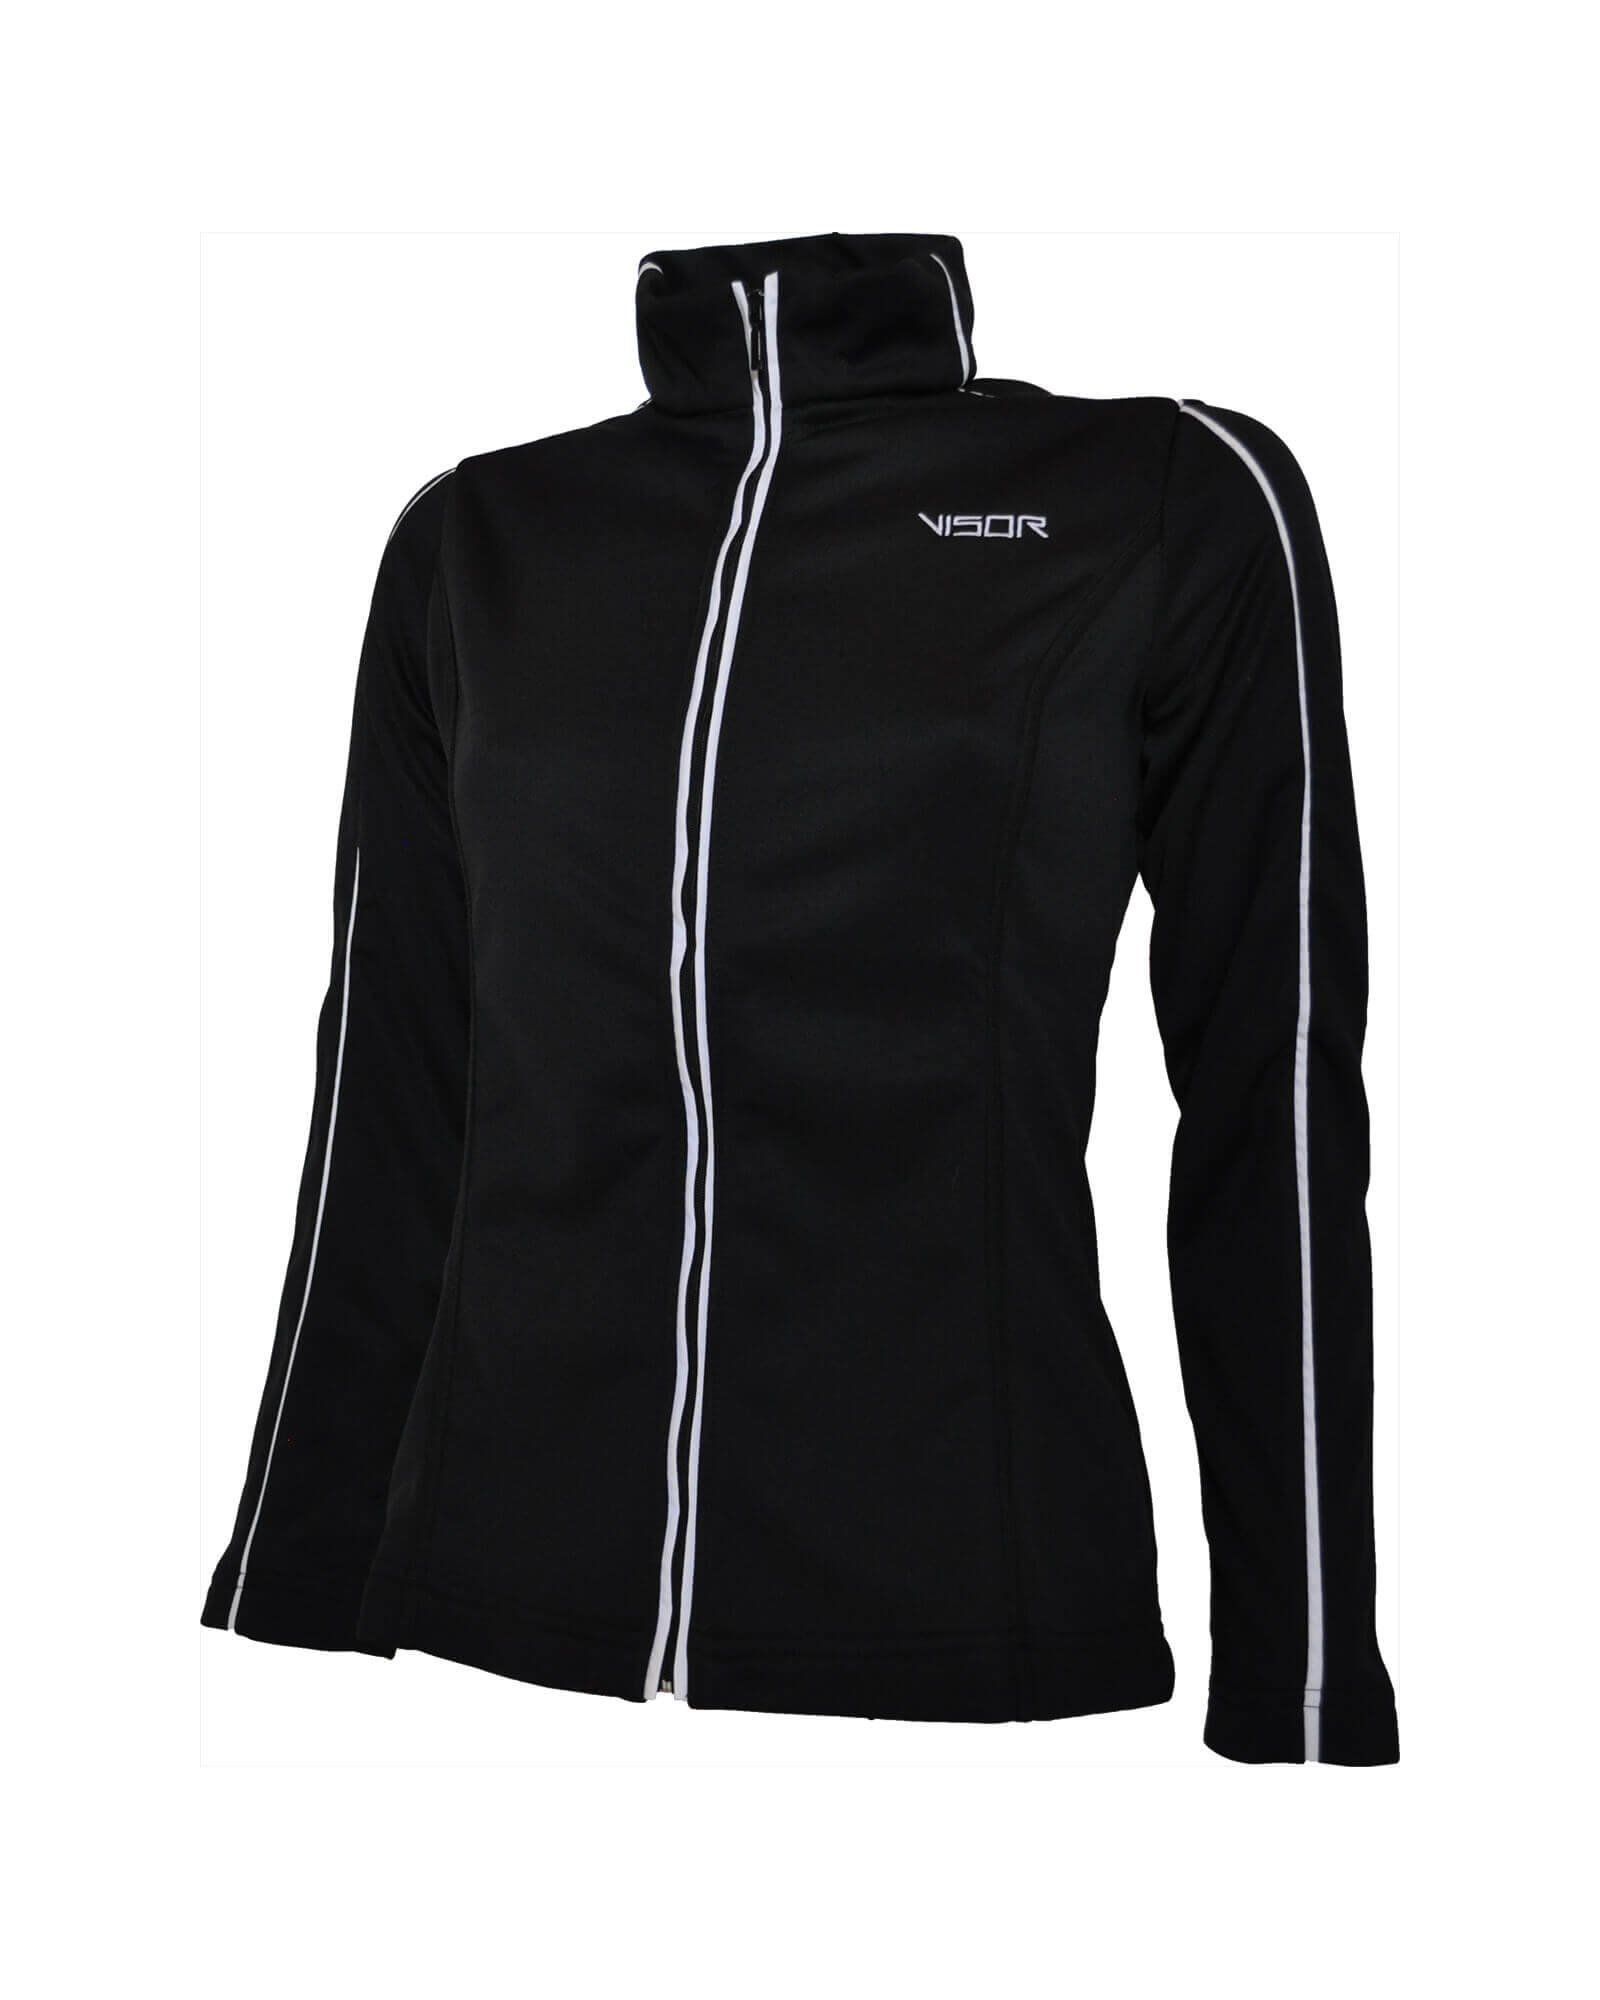 PACER Midlayer Women